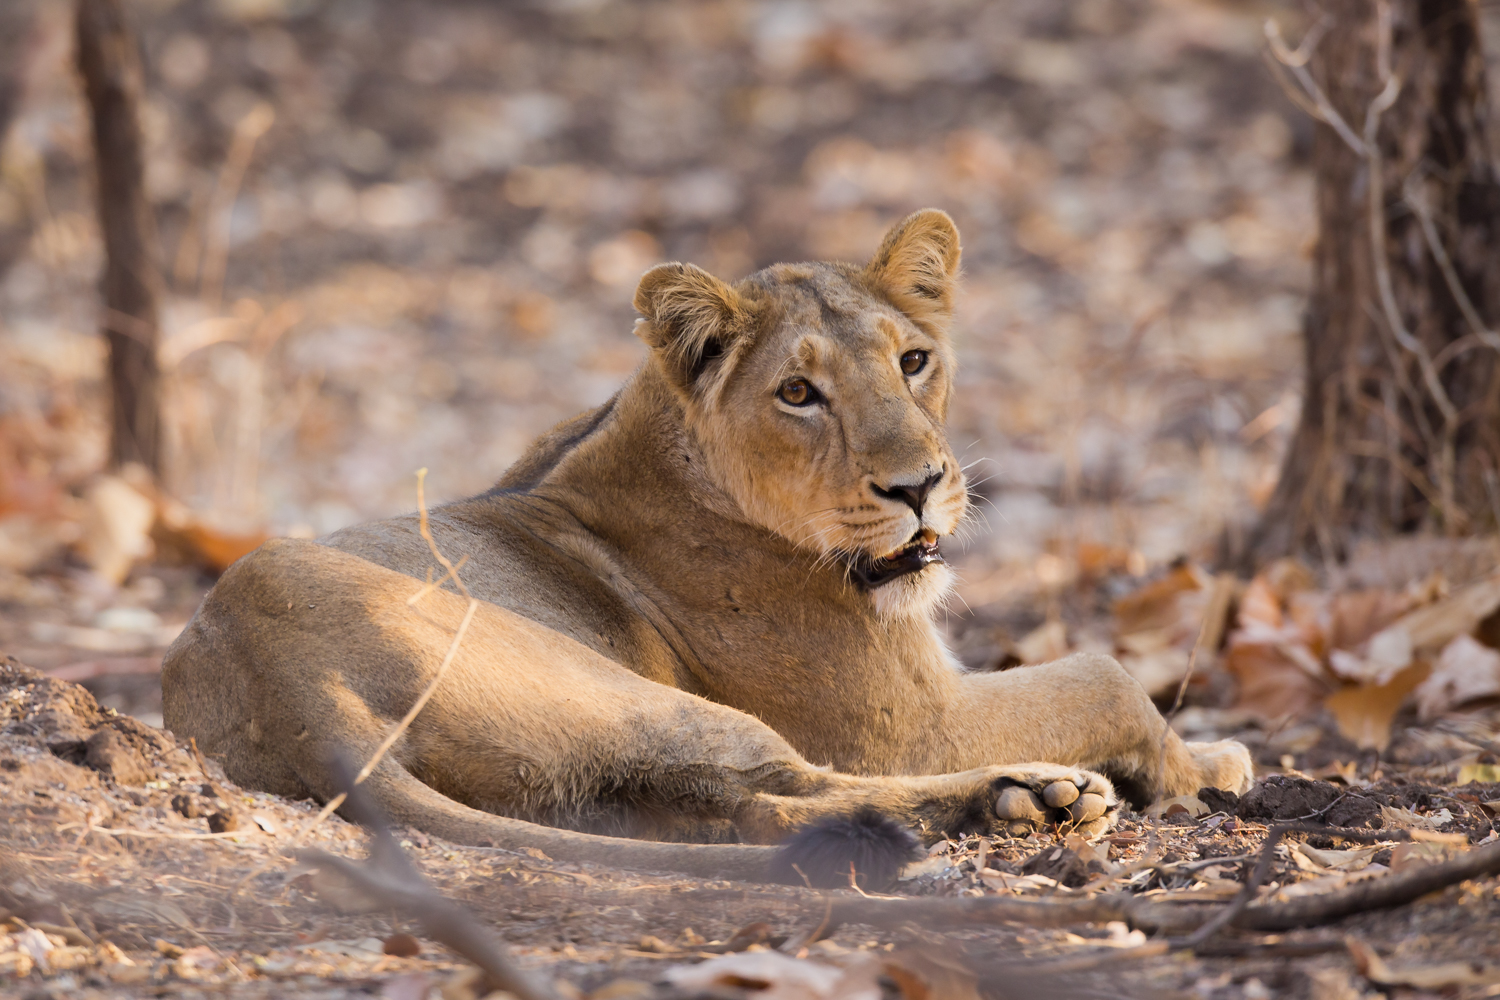 Asiatic Lion, animals of India, big cats, wildlife photography